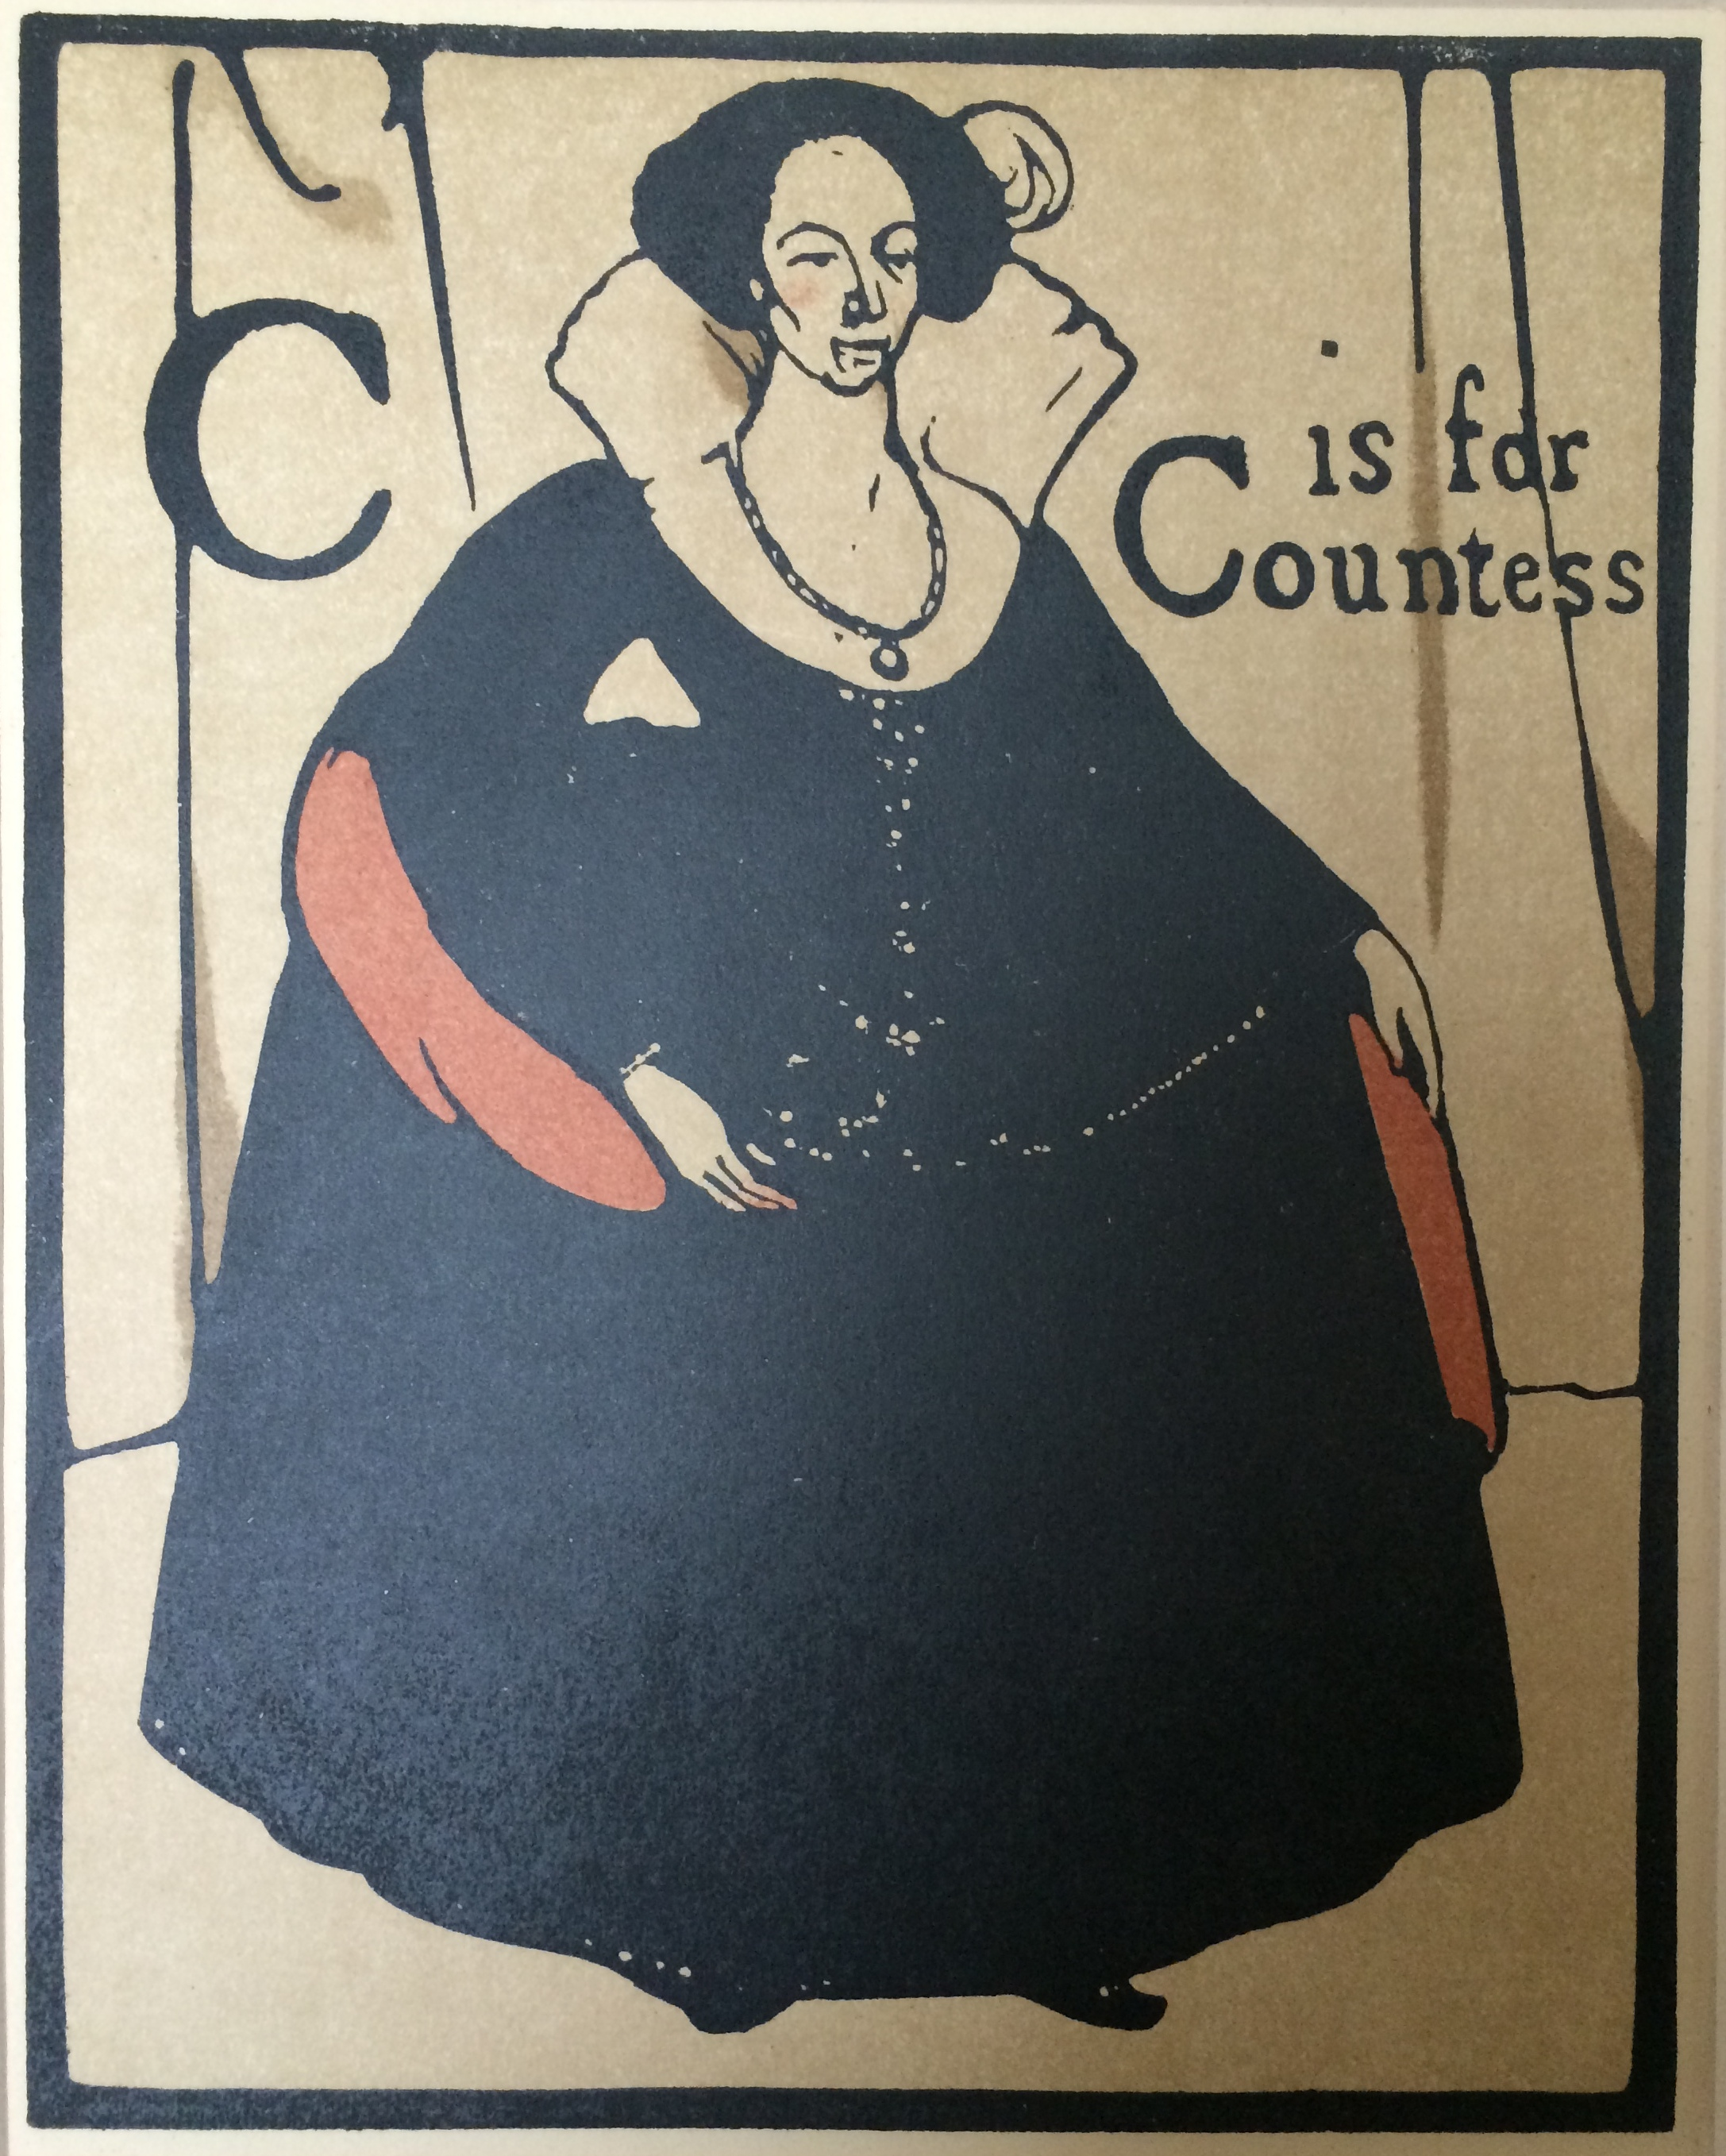 C is for Countess